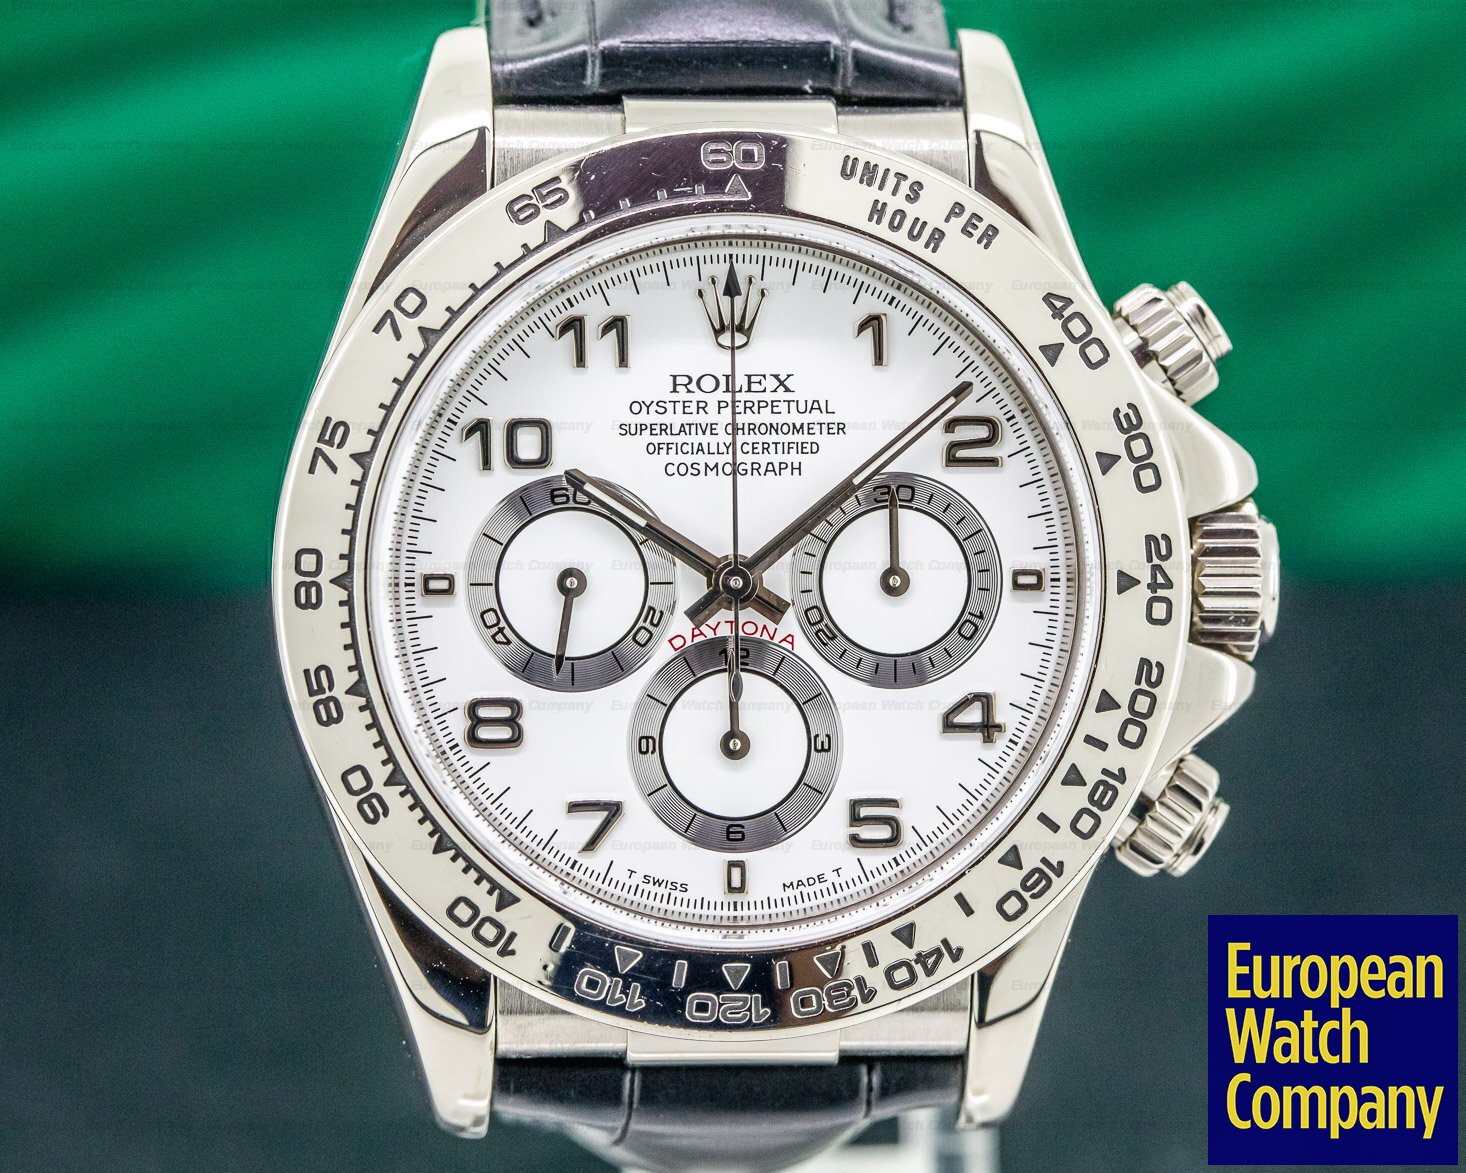 Rolex 16519 Daytona 18K White Gold Zenith Movement